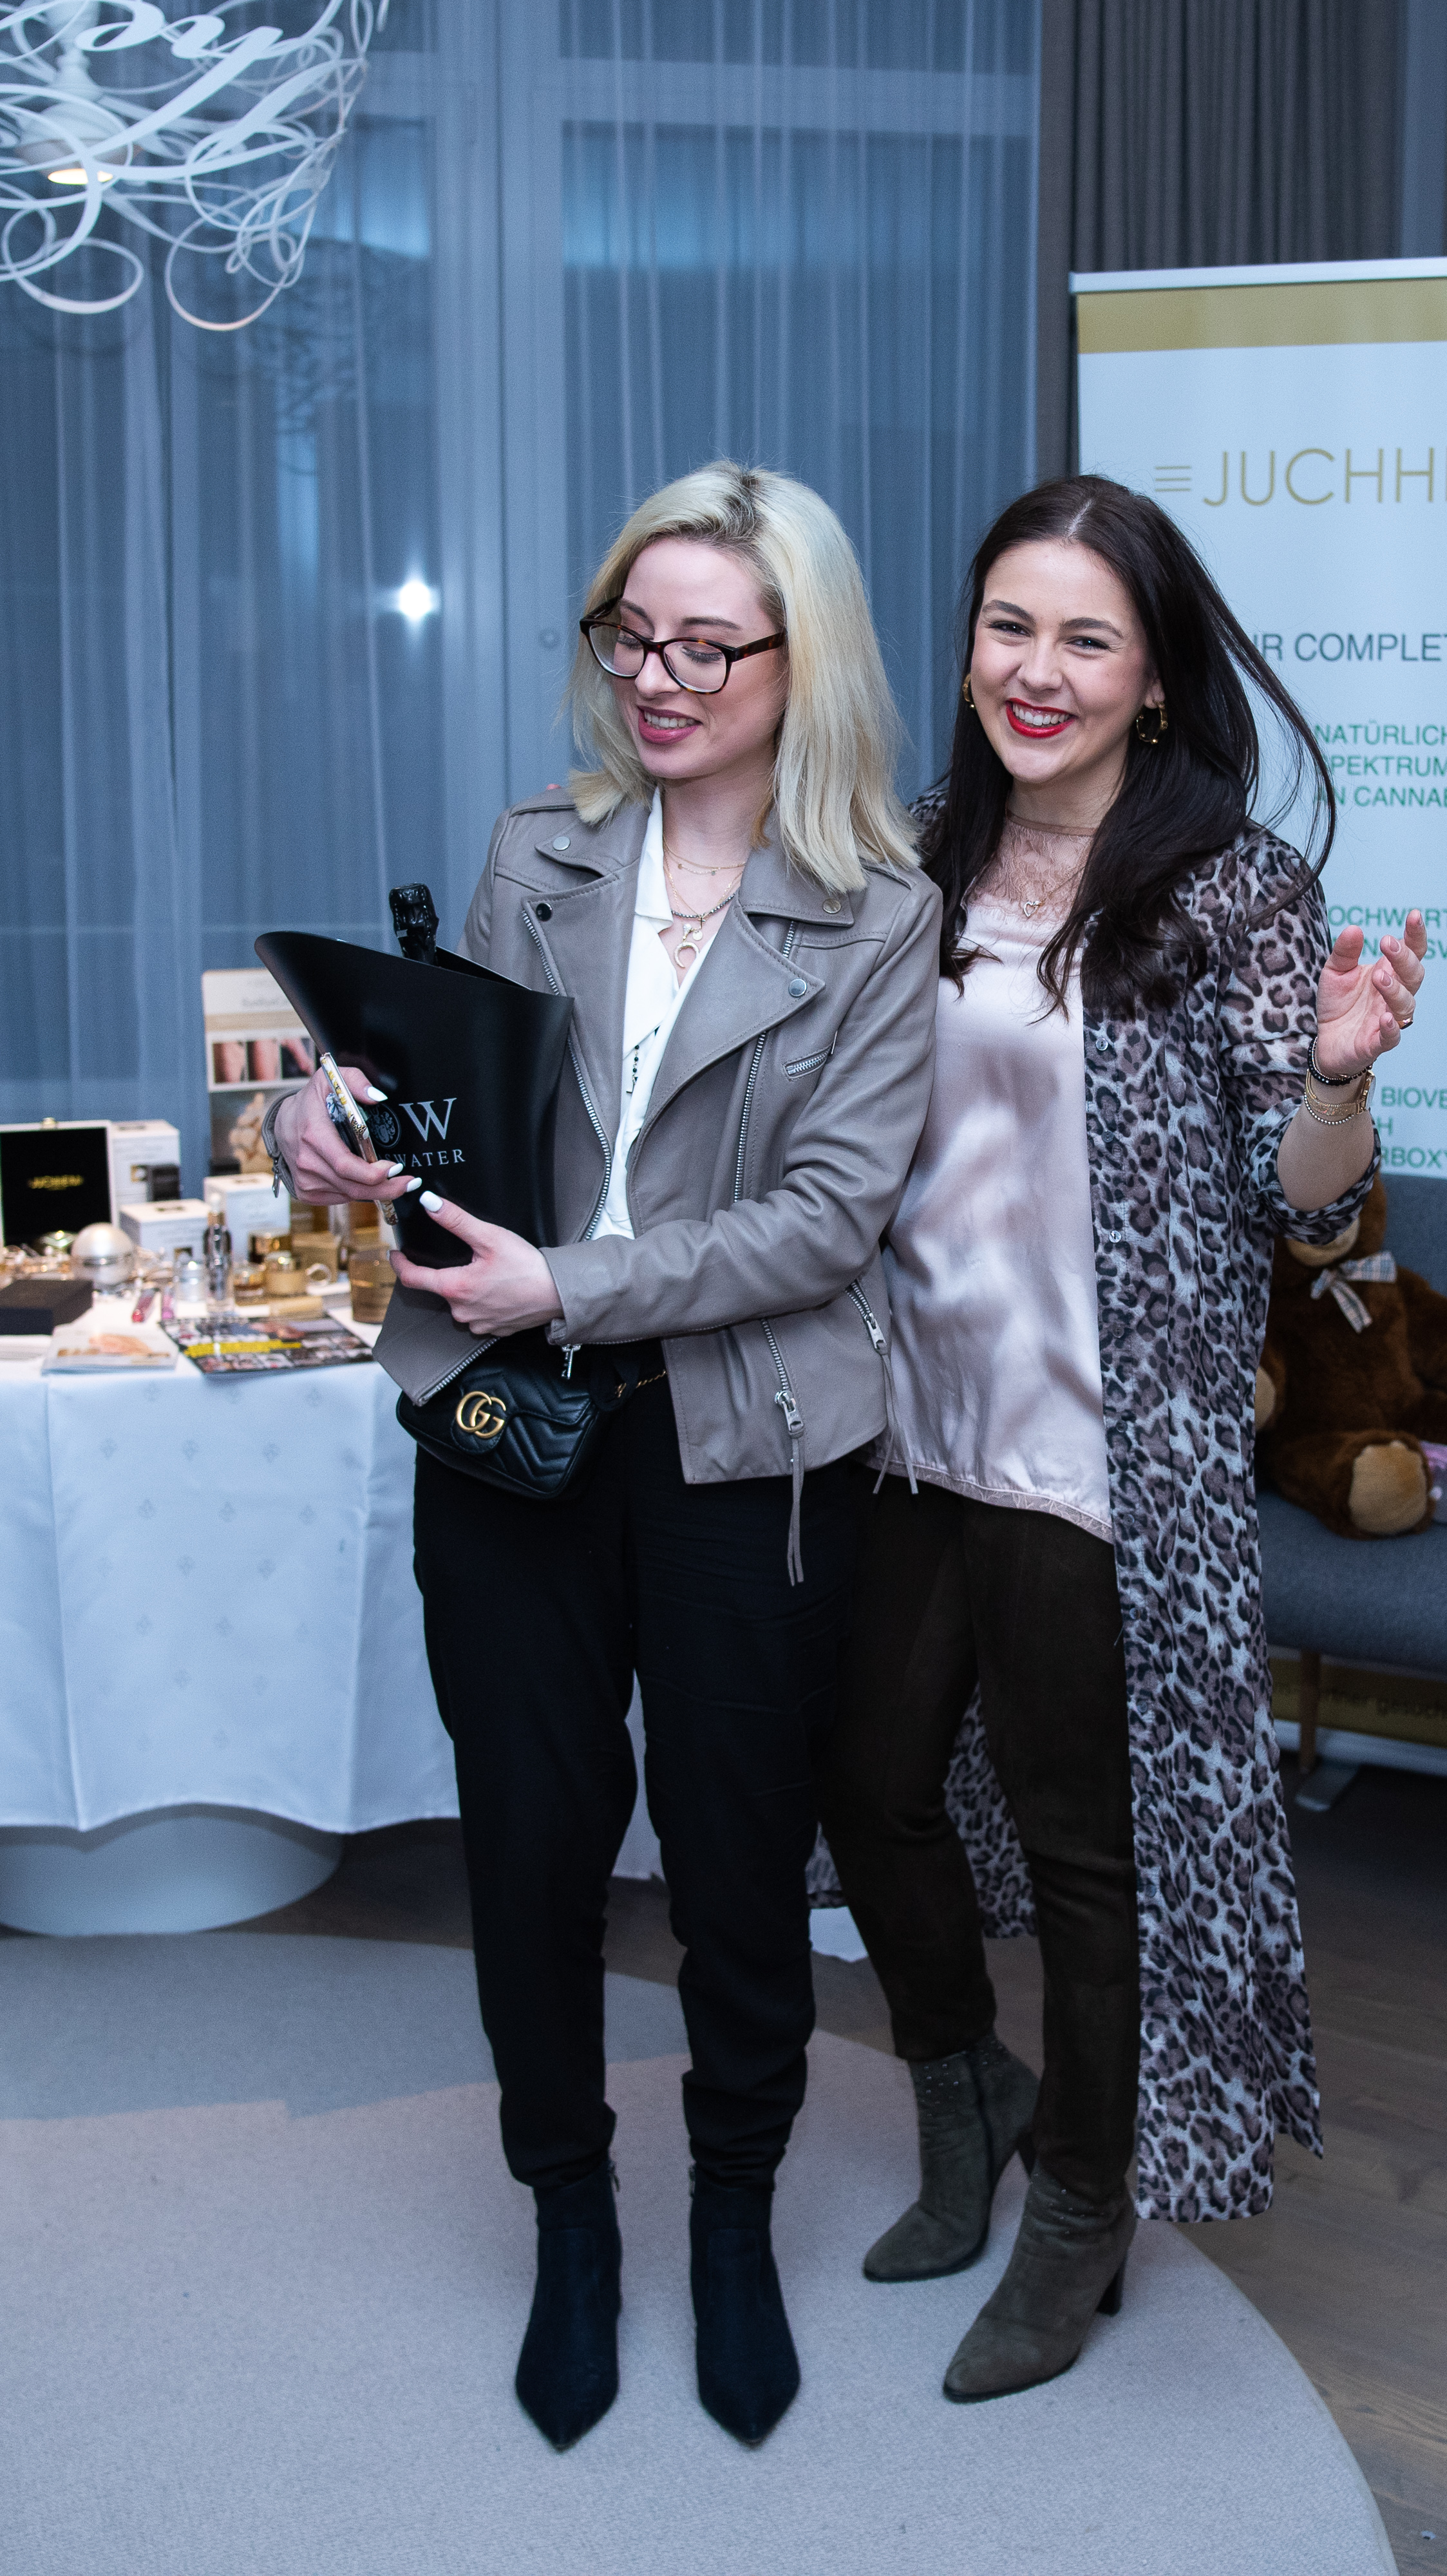 Frühlingshafte Beauty Highlights auf der Fashiondeluxxe Beauty Night - Edition Spring Mood im Steigenberger Hotel München, gewonnen in der Tombola